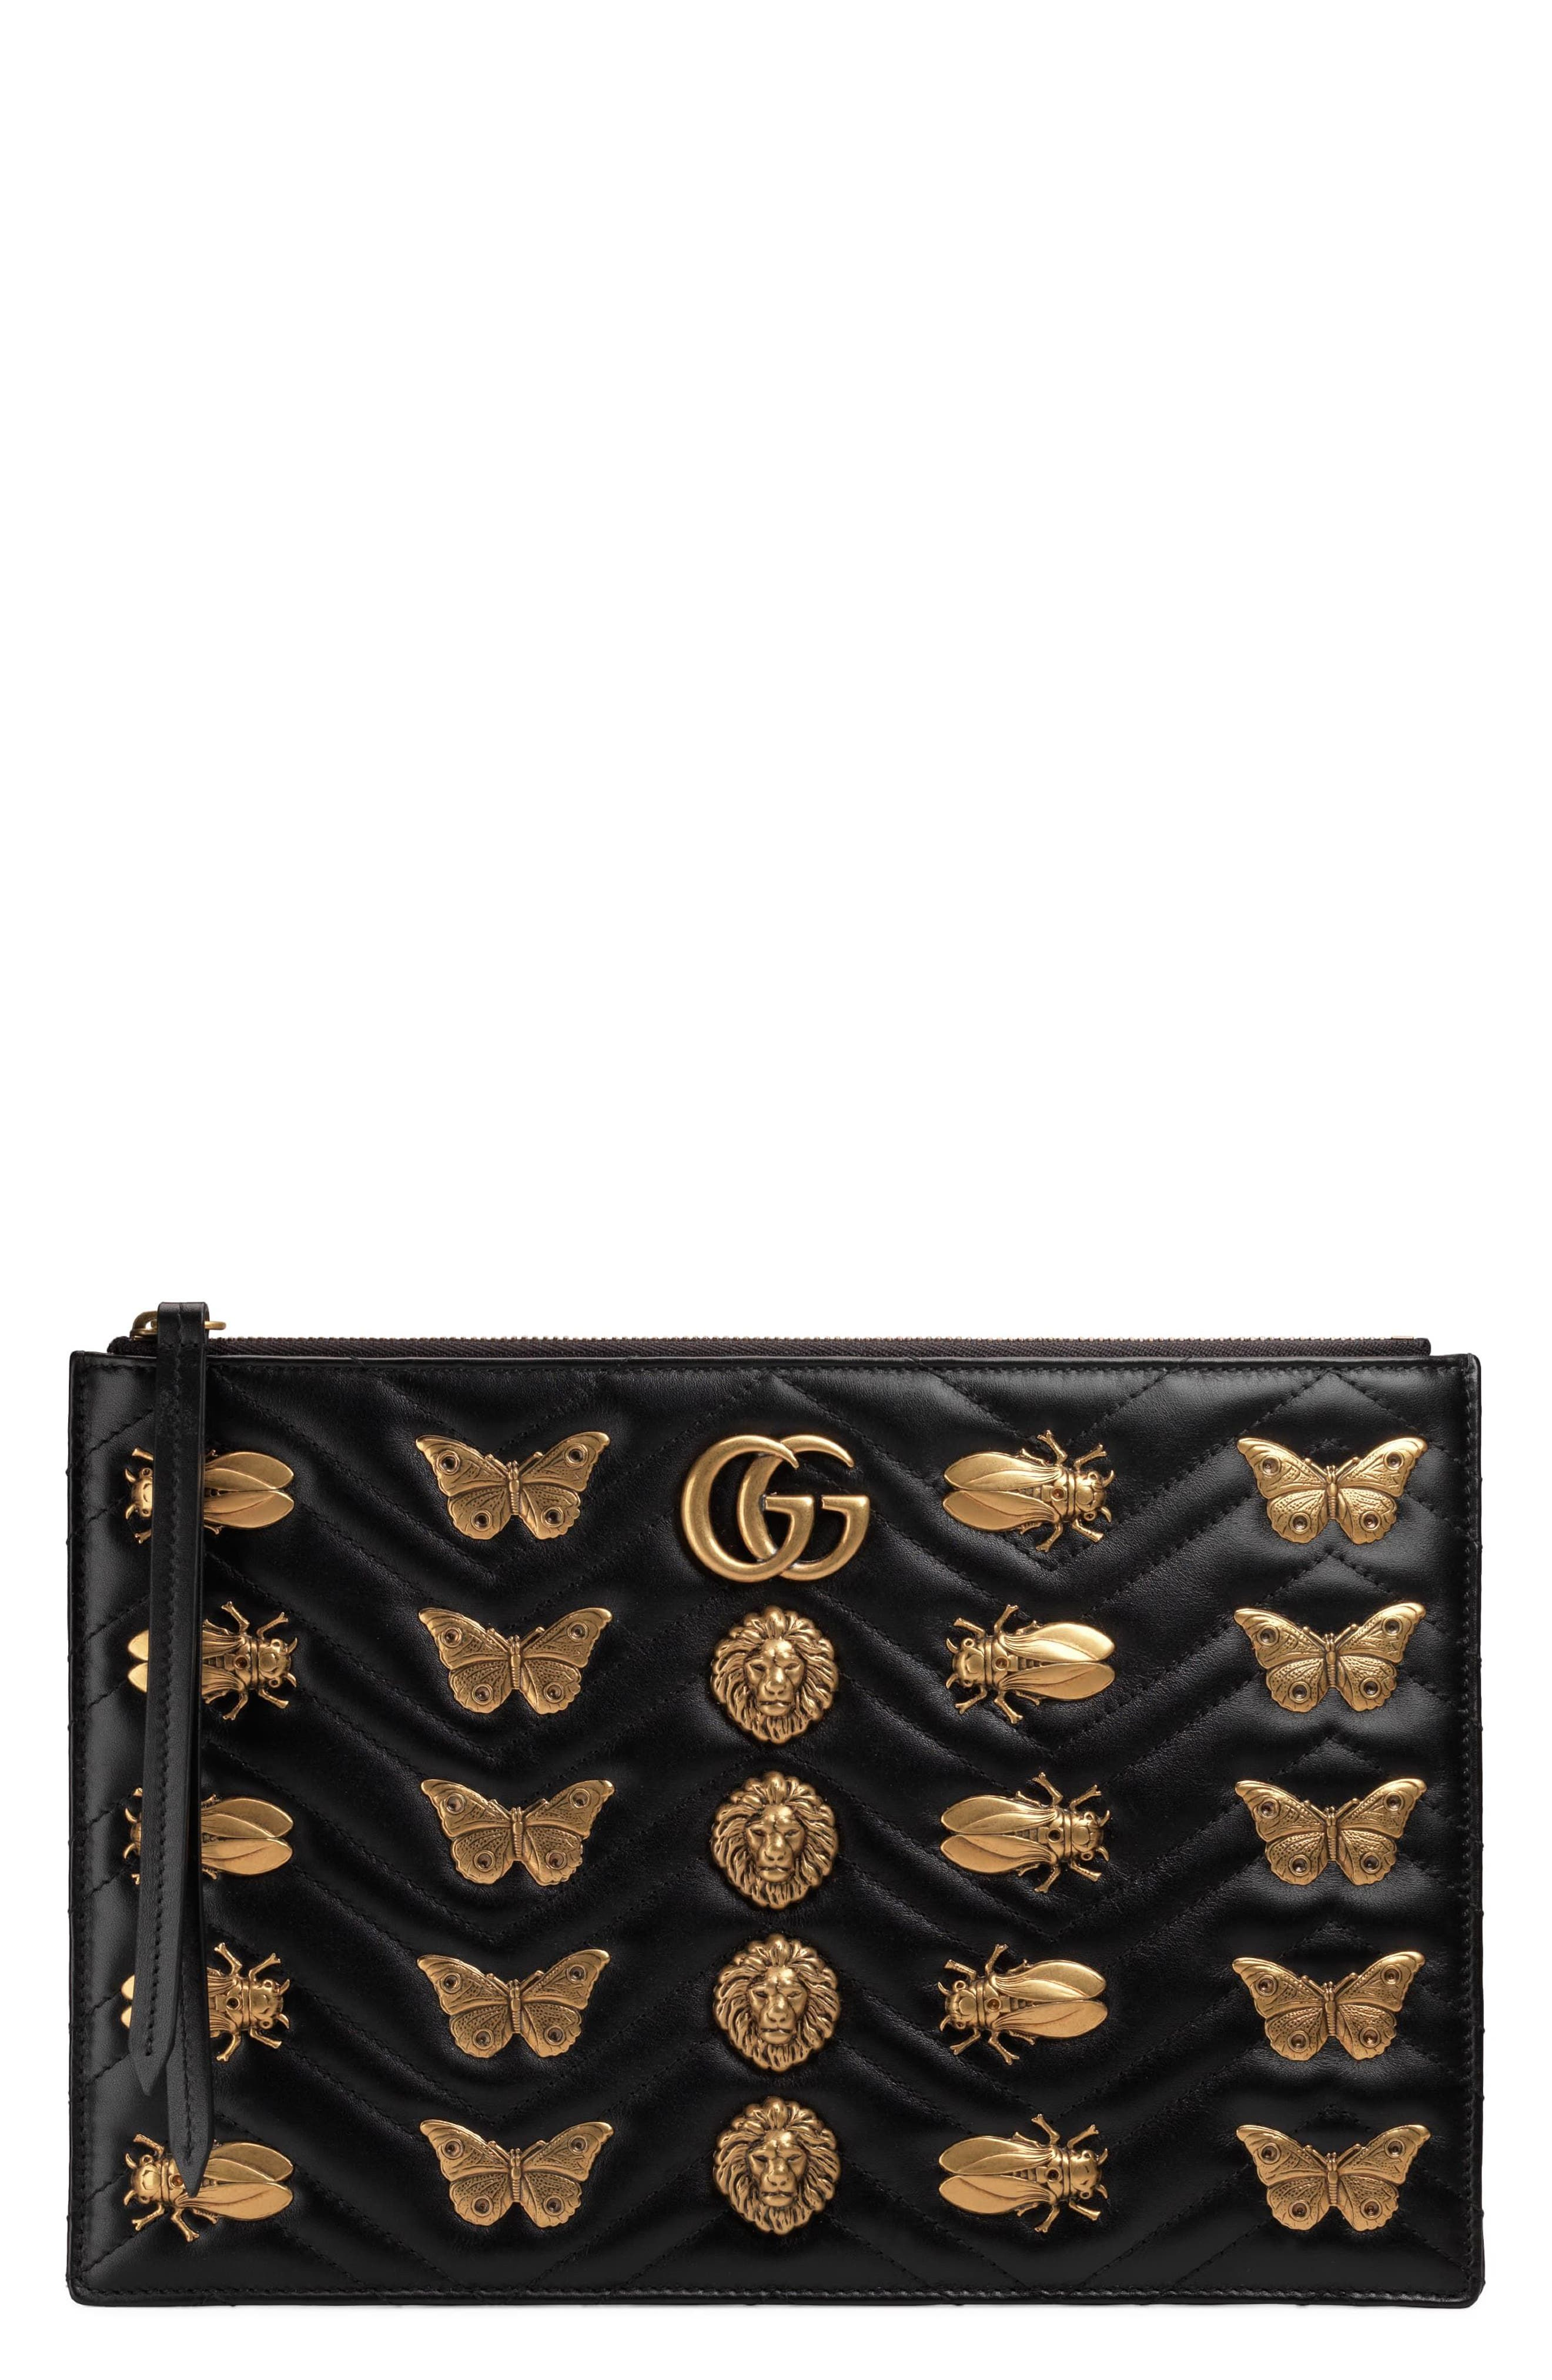 GG Marmont 2.0 Animal Stud Matelassé Leather Pouch,                             Main thumbnail 1, color,                             Nero